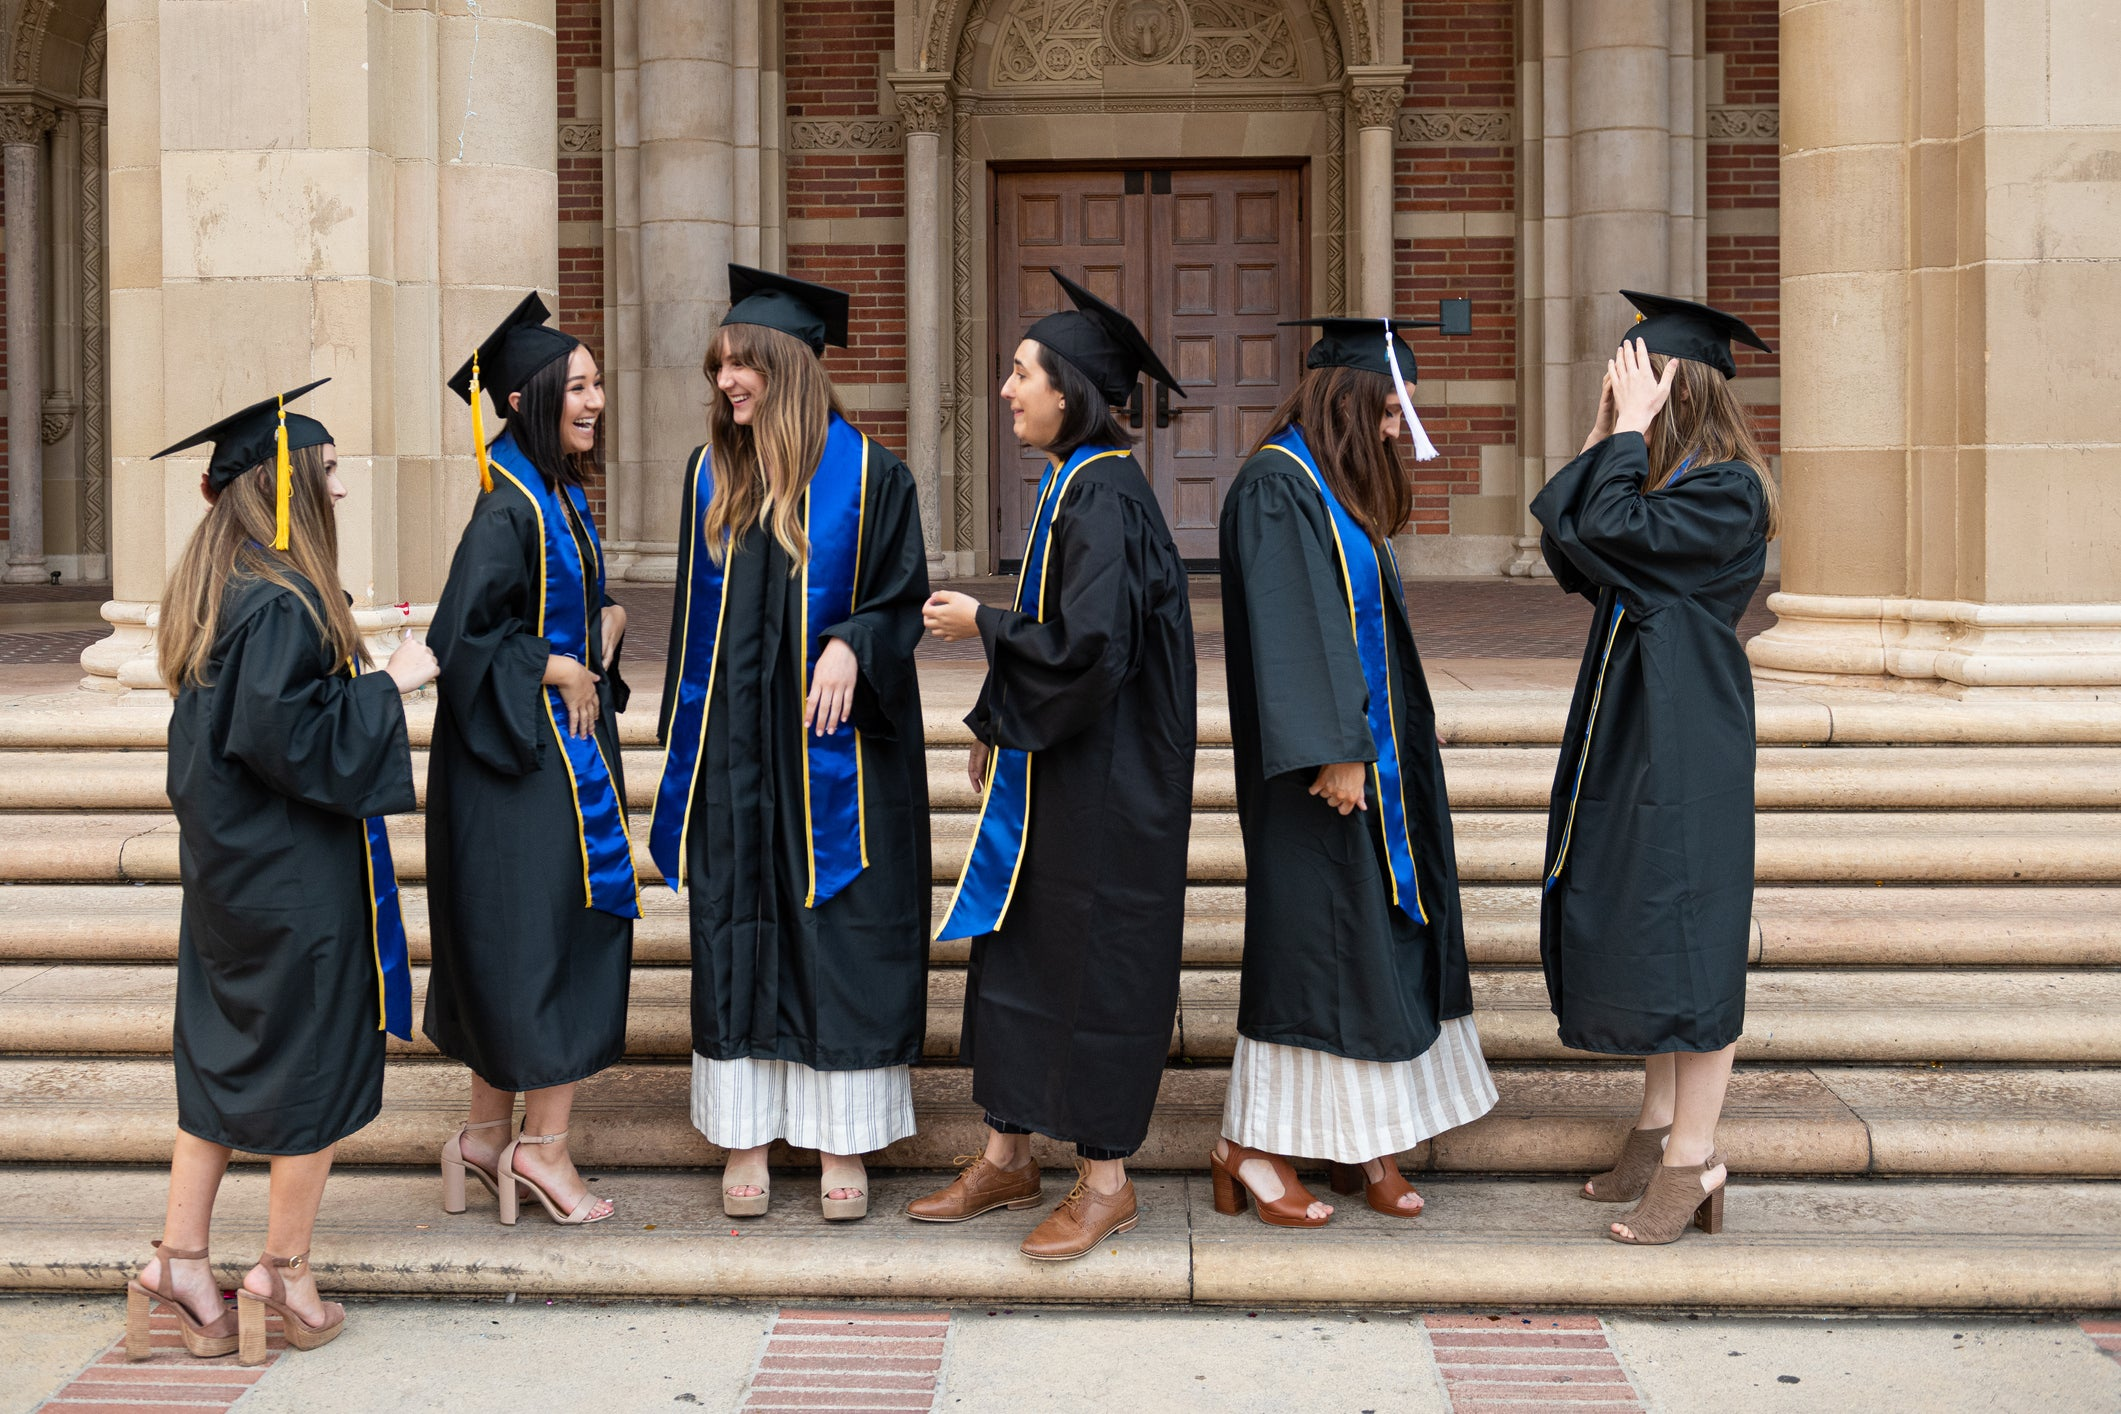 A group of six young women in graduation caps and gowns talking animatedly.